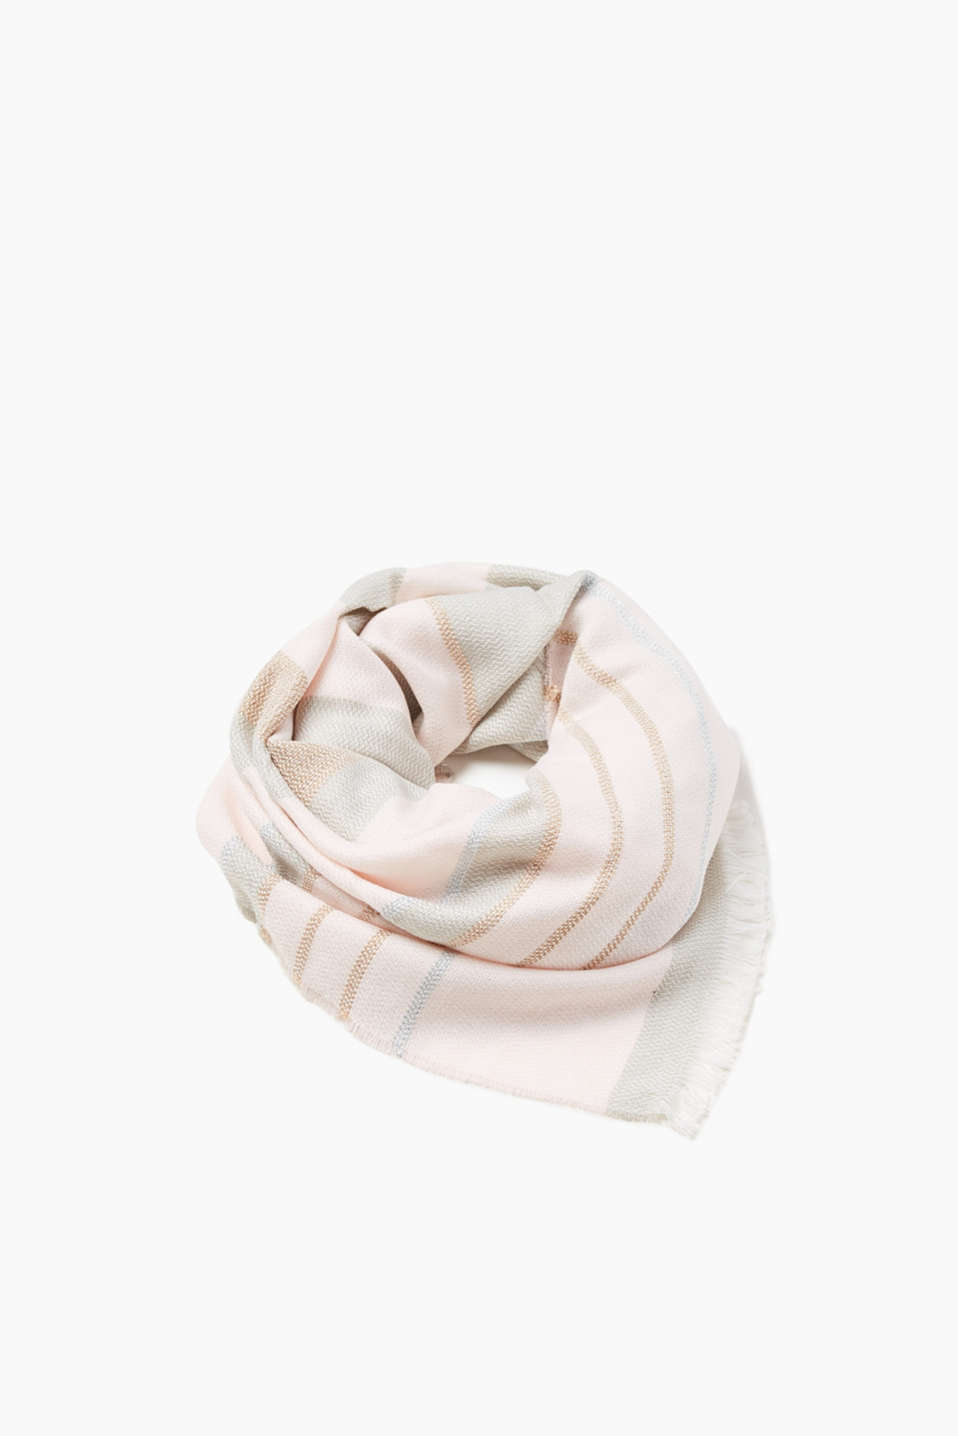 Autumn pastels! We love it! This woven scarf with block stripes and lurex threads is extremely eye-catching.